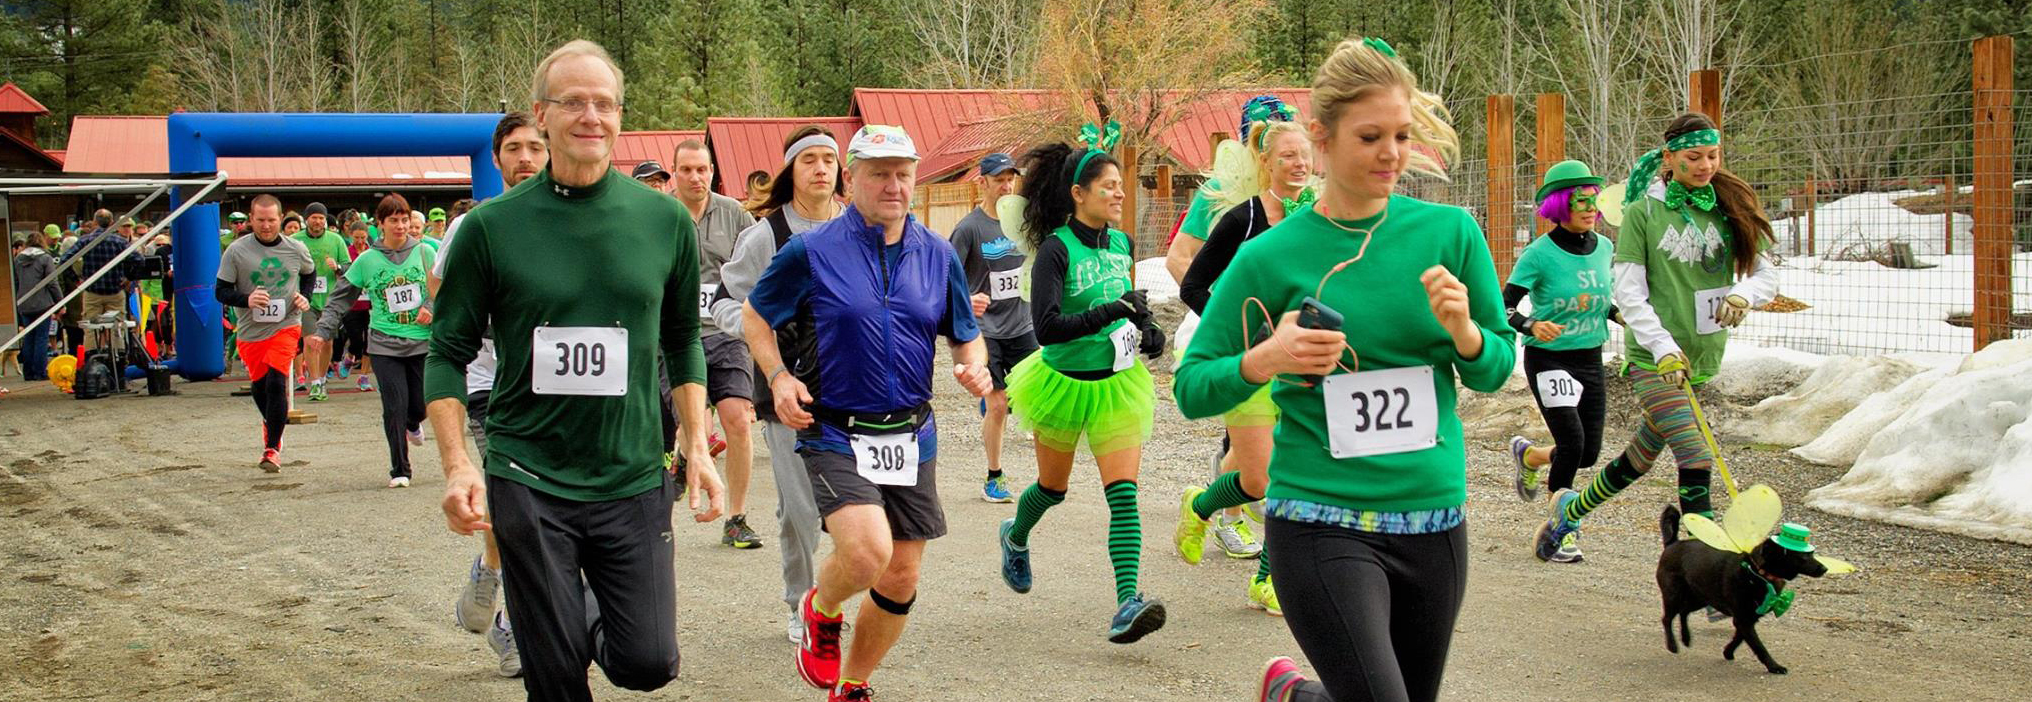 Run Wenatchee O Grady S St Paddy S 5k